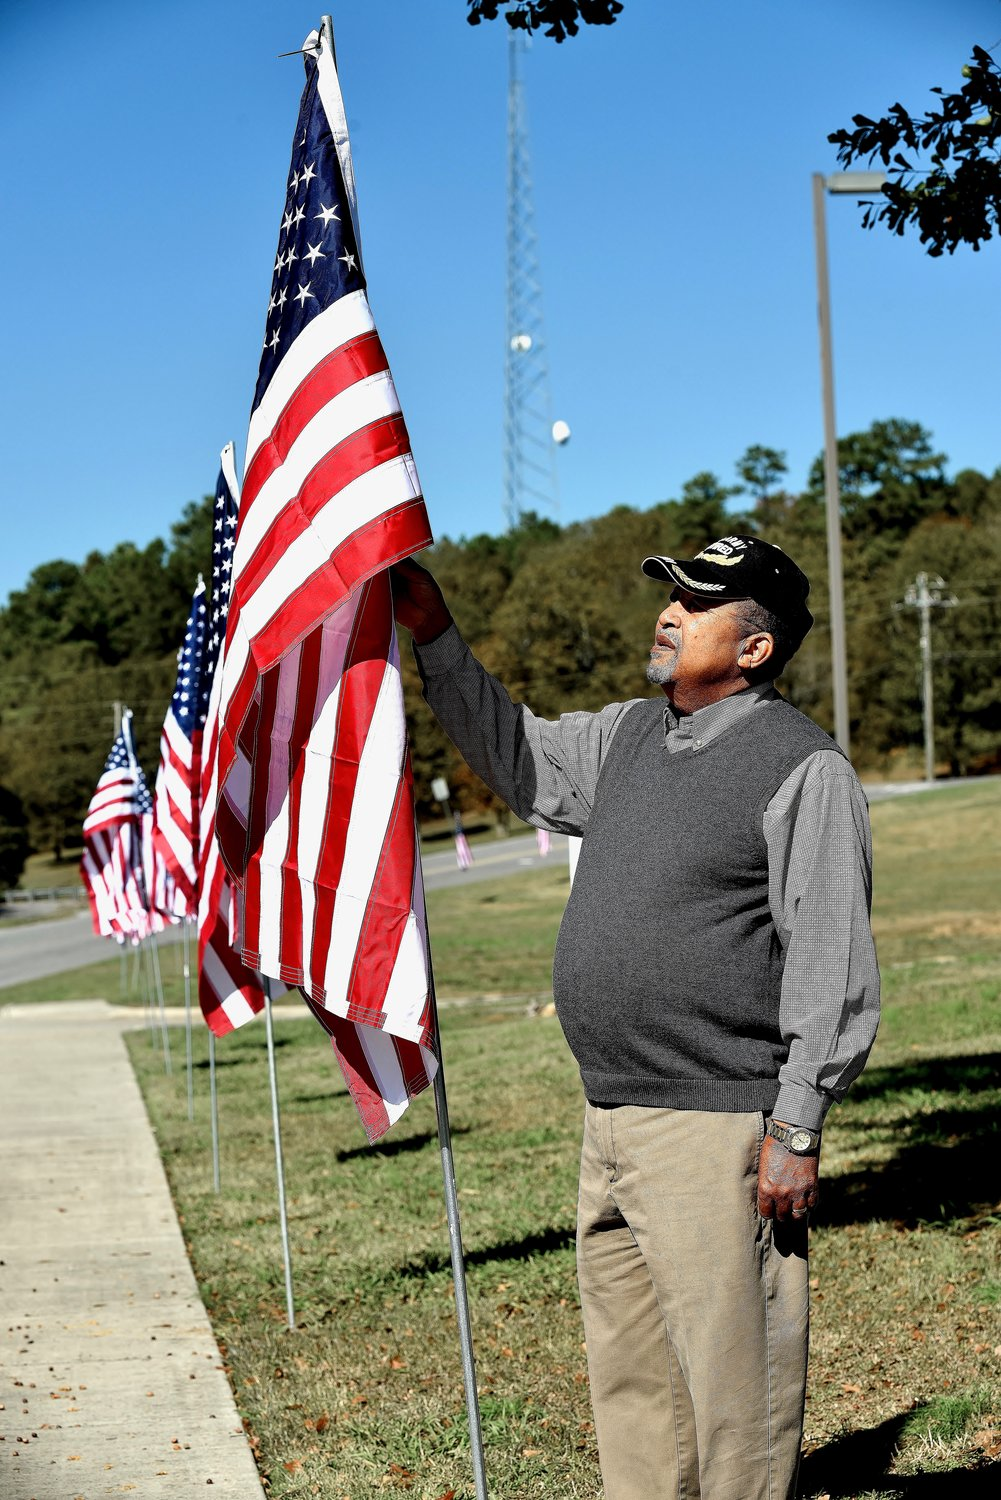 Retired U.S. Army veteran David Ford of Euharlee makes adjustments to one of the flags on display along Covered Bridge Road, commemorating Veterans Day.